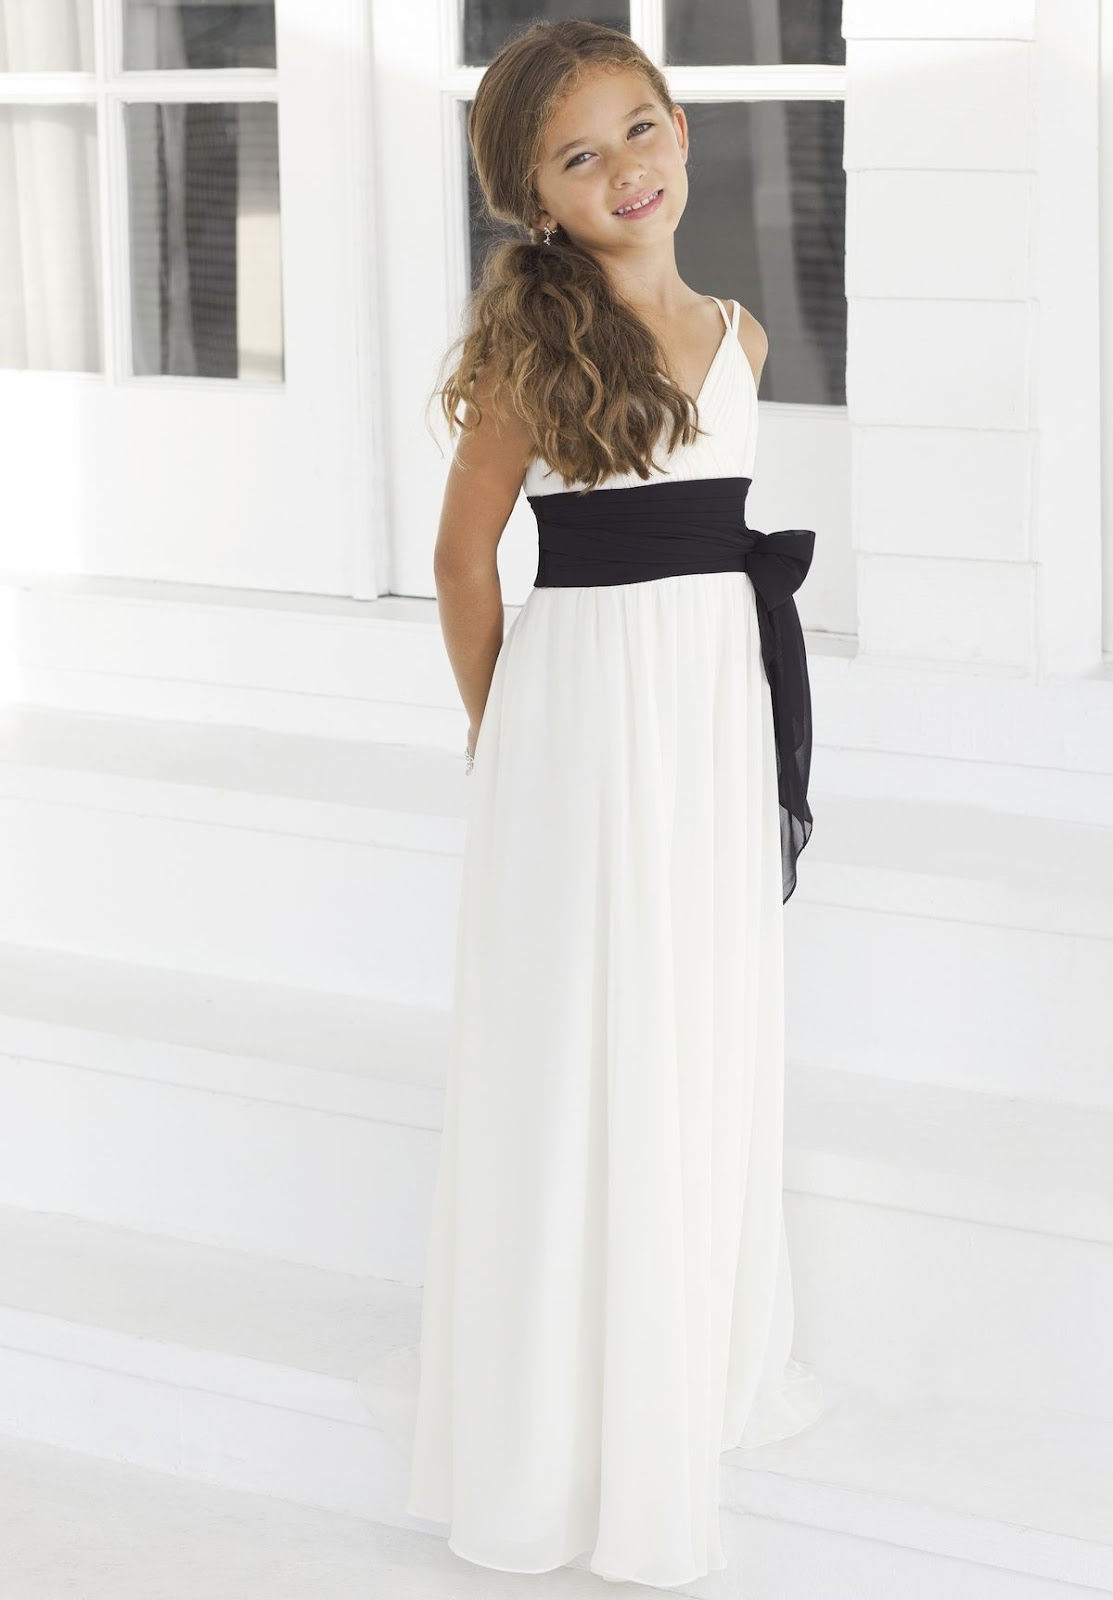 http://3.bp.blogspot.com/-7QDwocwCNvw/UFknycRQEBI/AAAAAAAAAdY/eOHkcQSvwVE/s1600/chiffon-v-neck-column-long-junior-bridesmaid-dress.jpg